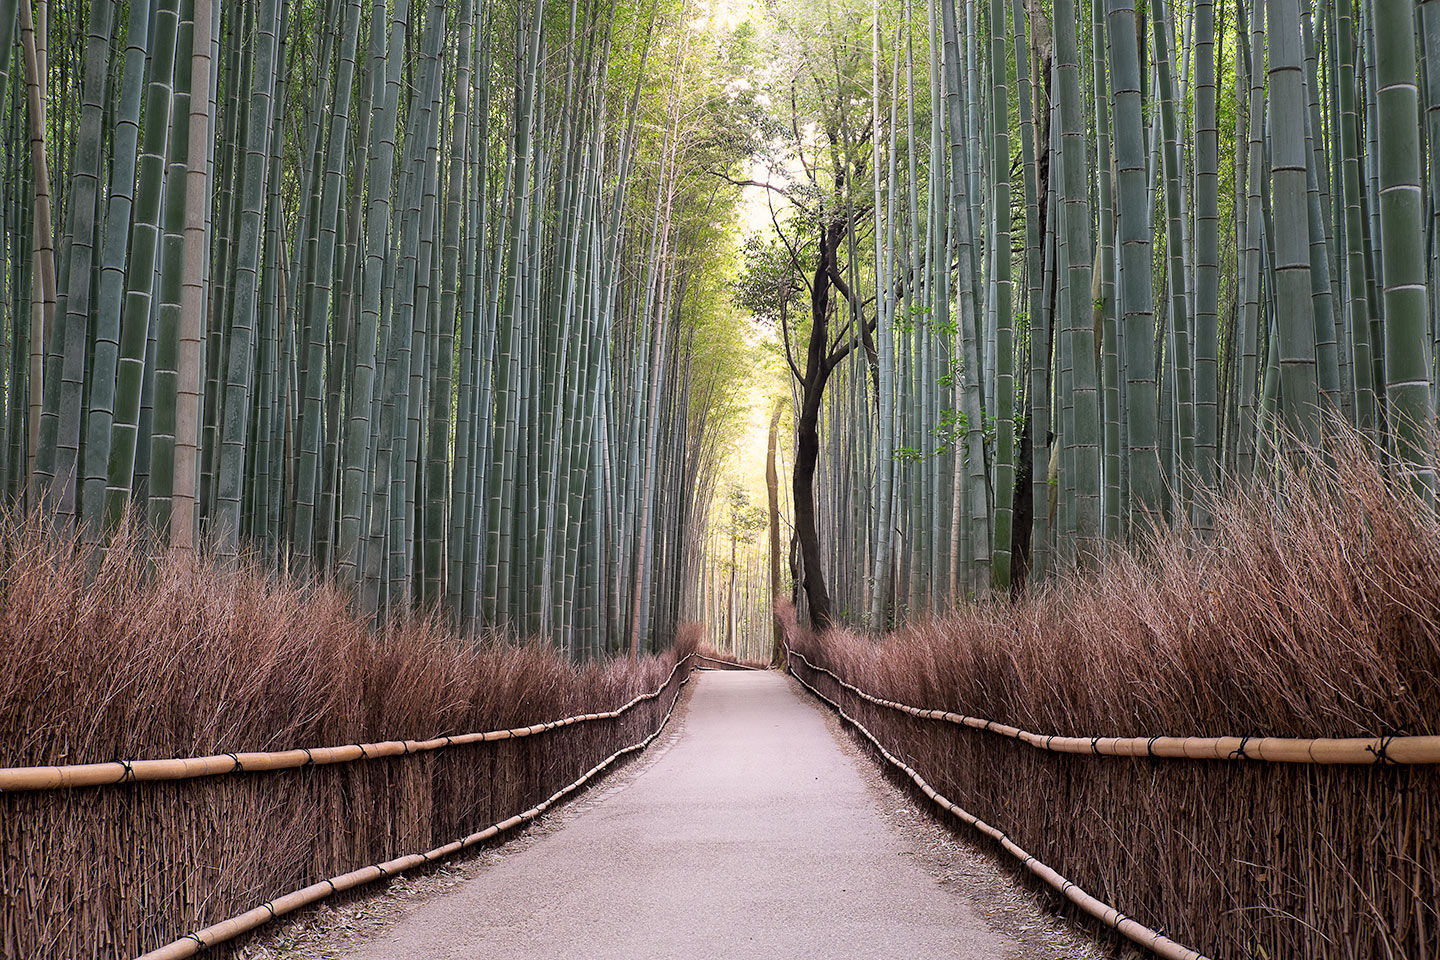 Arashiyama, Japan - March 2014 - Fujifilm X-E2